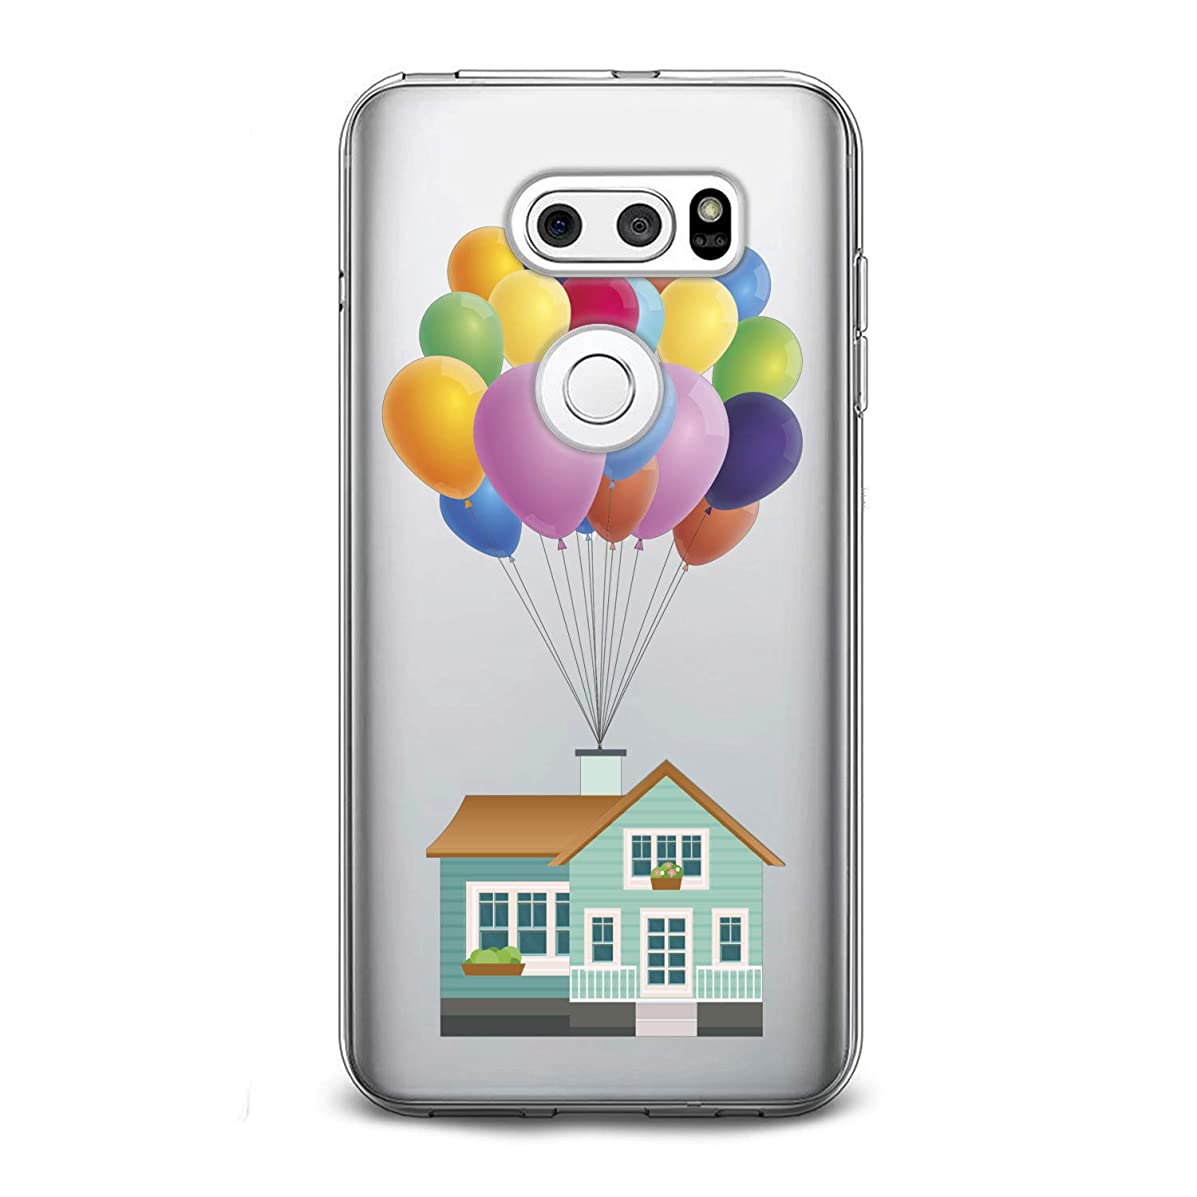 Lex Altern TPU Case for LG G8 Stylo 4 K11 G7 ThinQ G6 V40 V35 V50 K8 New Clear Figure Cute Up Silicone Movie Cartoon Cover Kawaii Balloon Print Protective Lightweight Flexible Girl Women Soft Gift